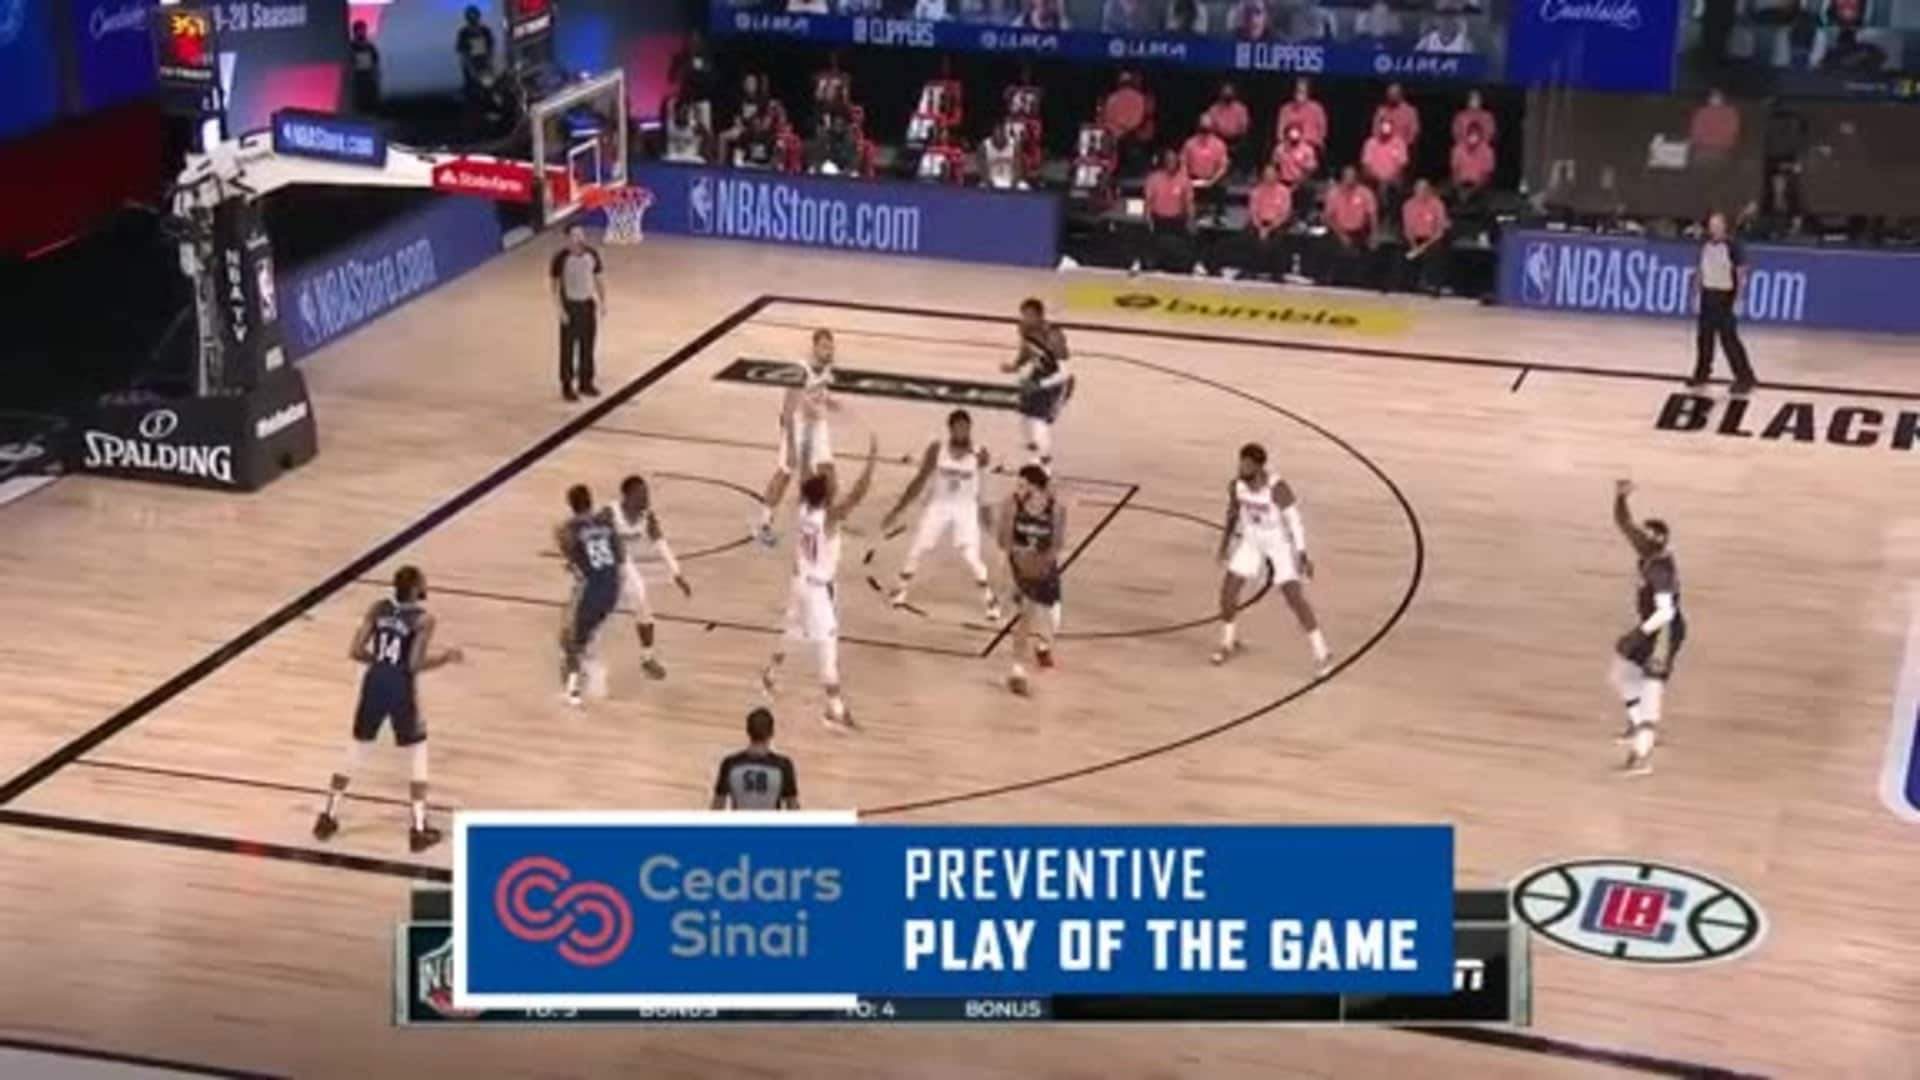 Cedars-Sinai Preventive Play of the Game | Clippers vs. Pelicans (08.01.20)